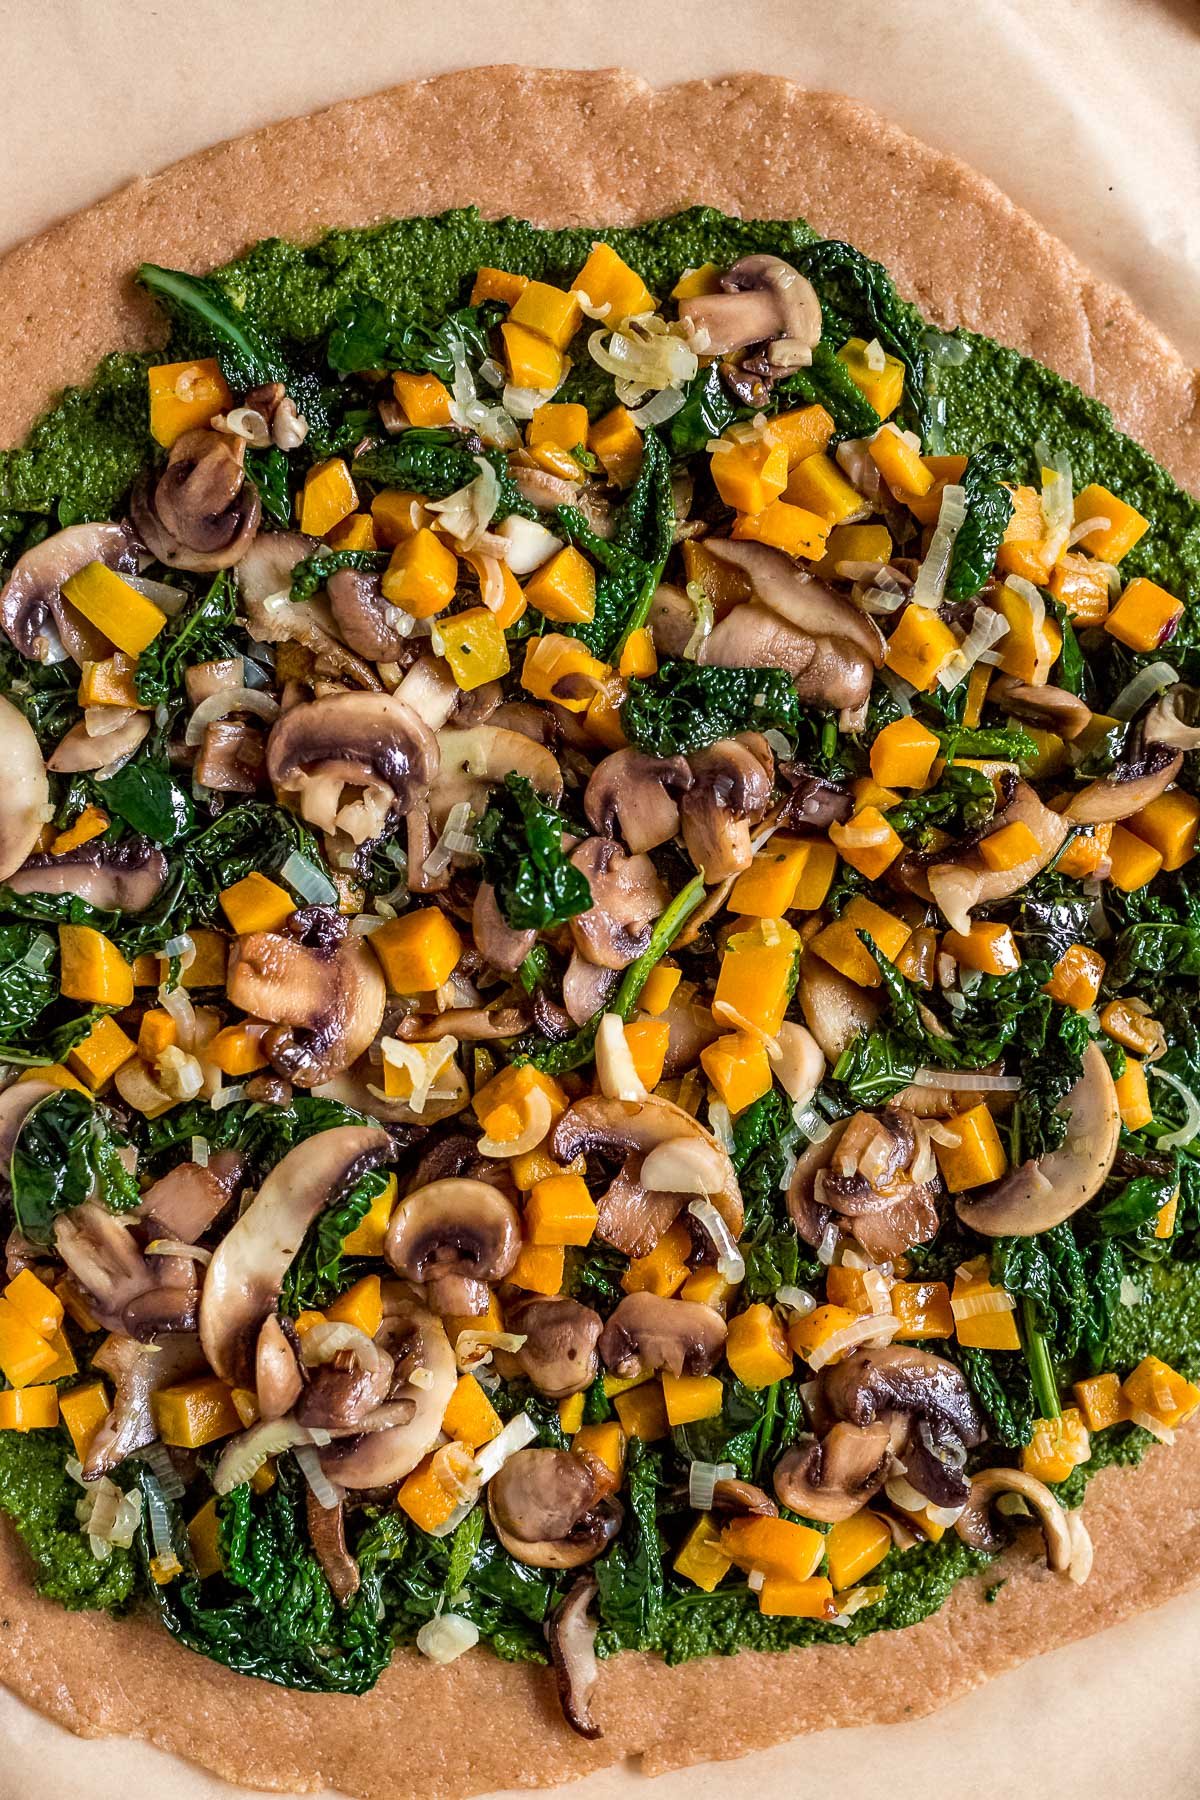 Torta salata zucca e funghi vegan con verdure e pesto di cavolo nero VEGAN Mushroom Pumpkin GALETTE with kale pesto and veggies